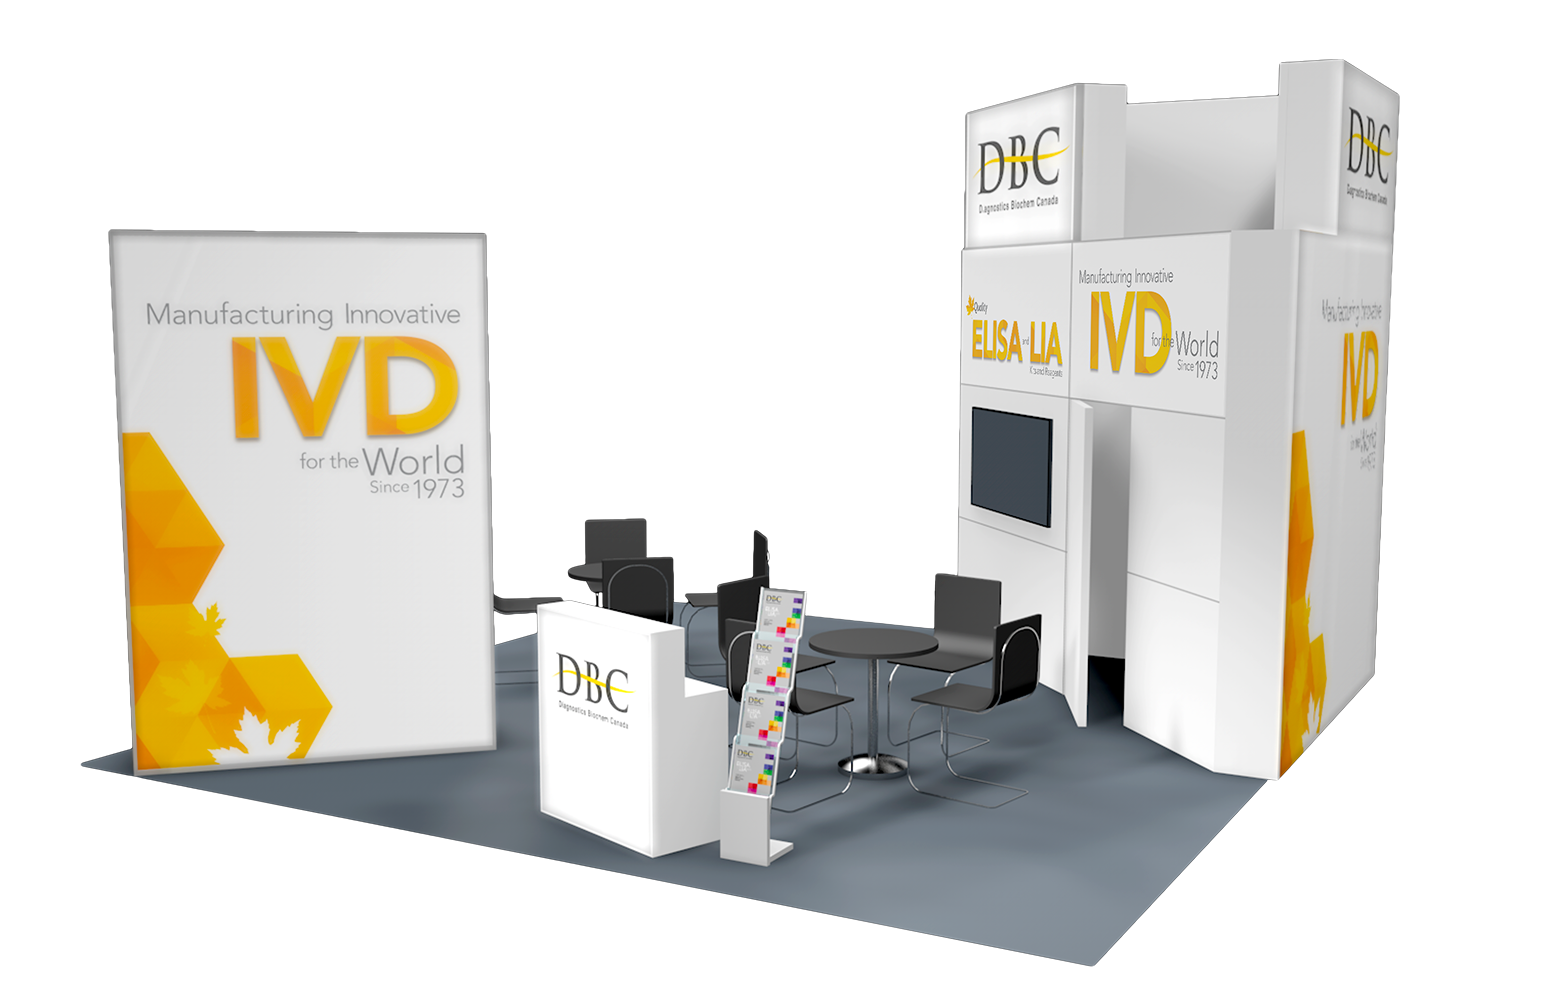 DBC booth 3557 - AACC 2019